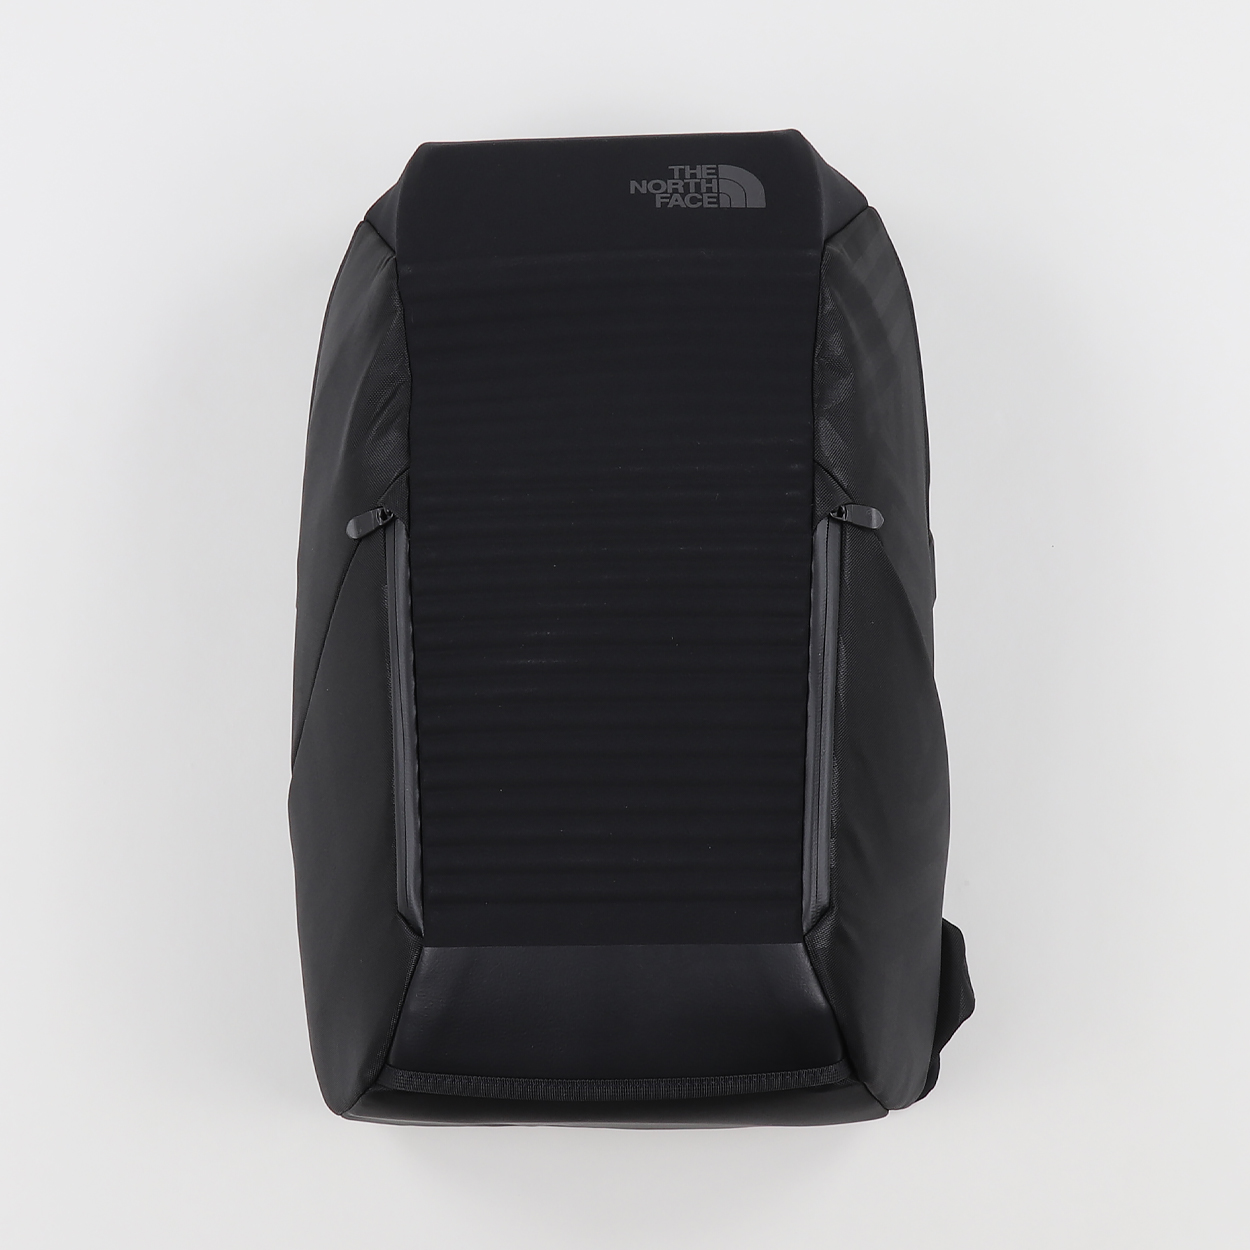 8bfed8d8f8 The North Face Access 22 Litre Capacity Back Pack Black £154.00